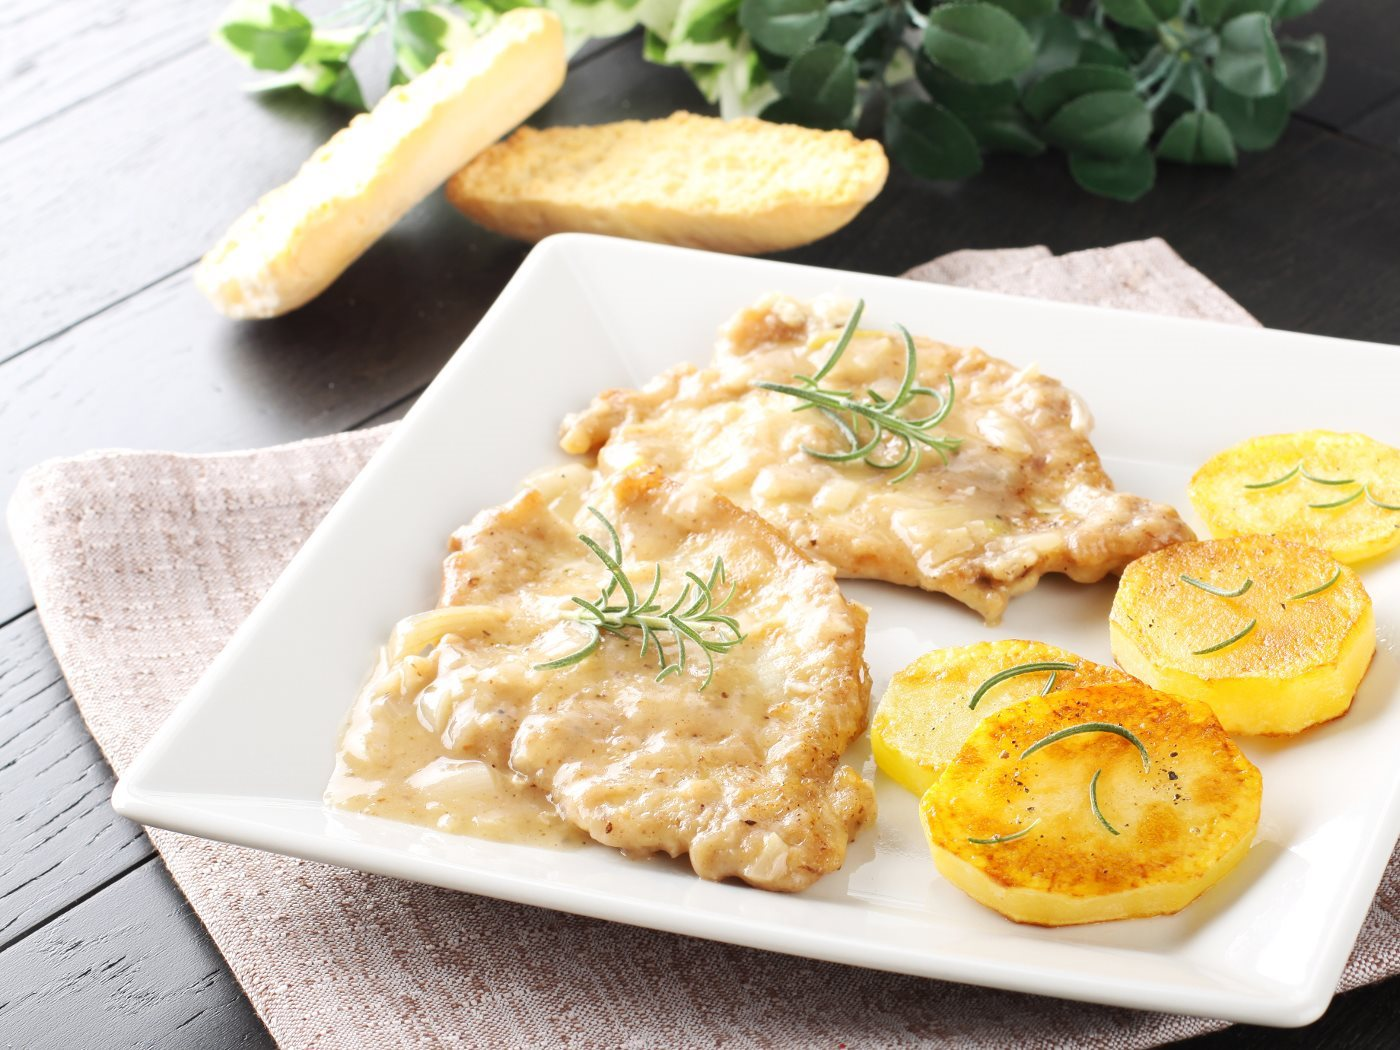 scaloppine_al_vino_1400x1050